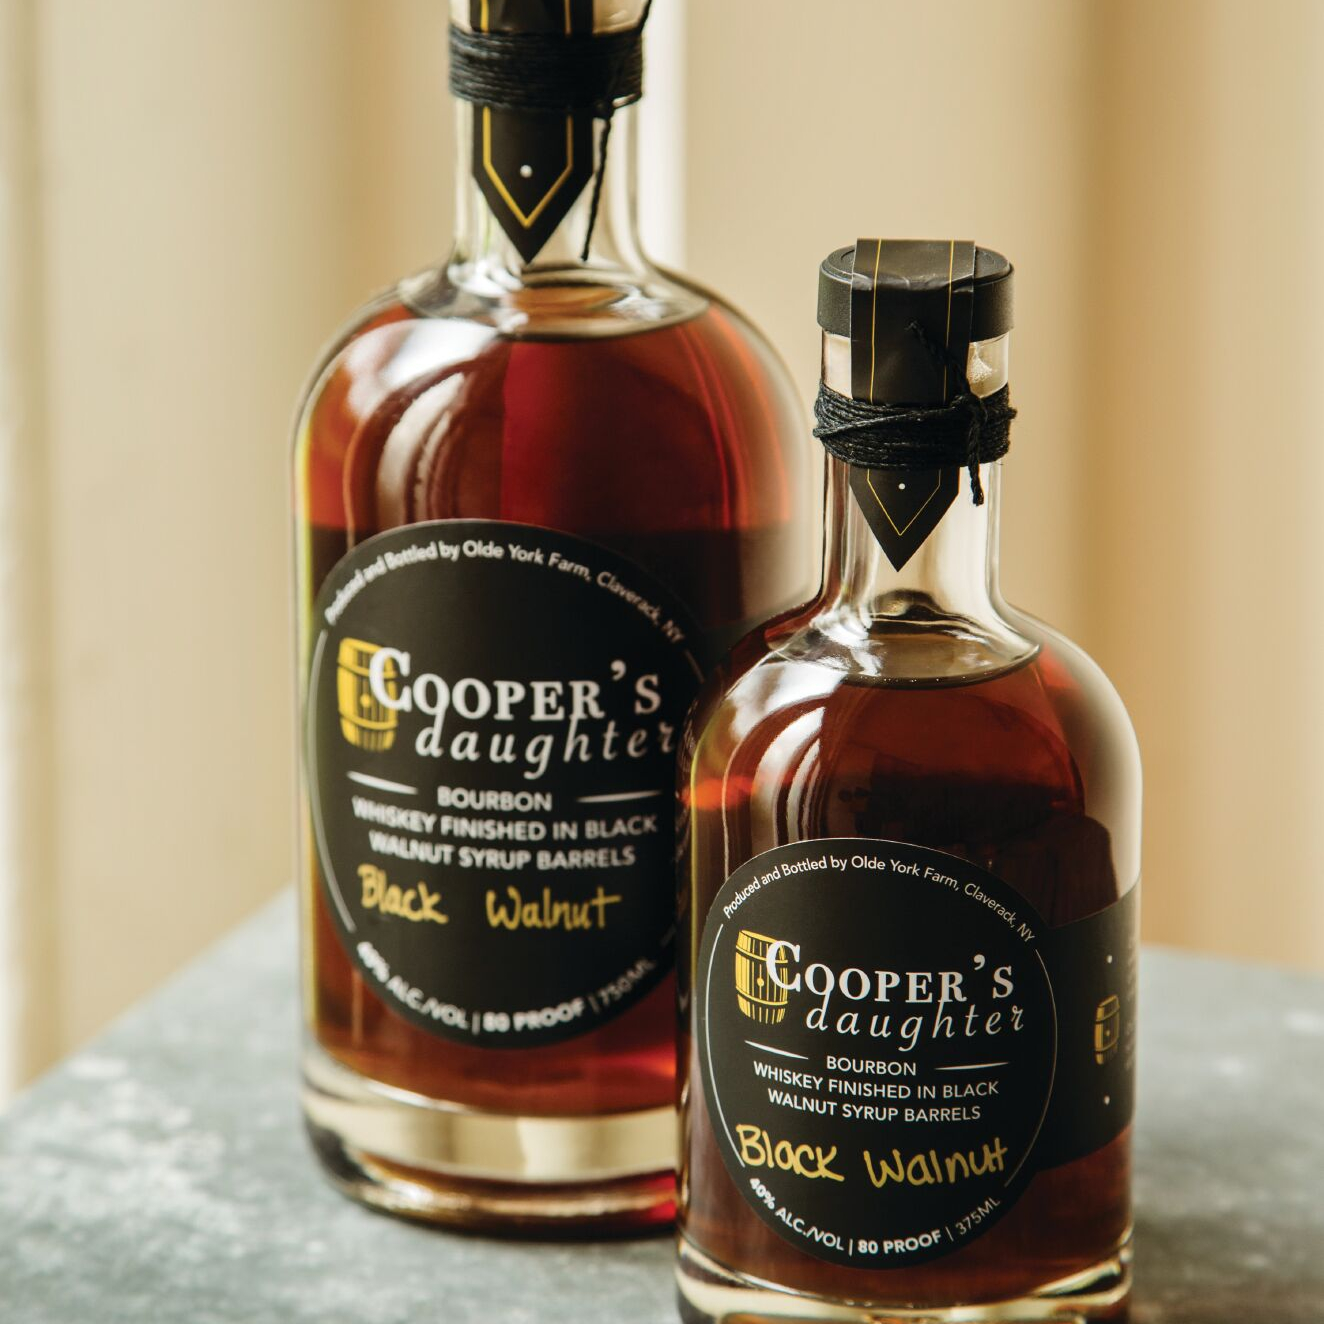 Cooper's Daughter Spirits